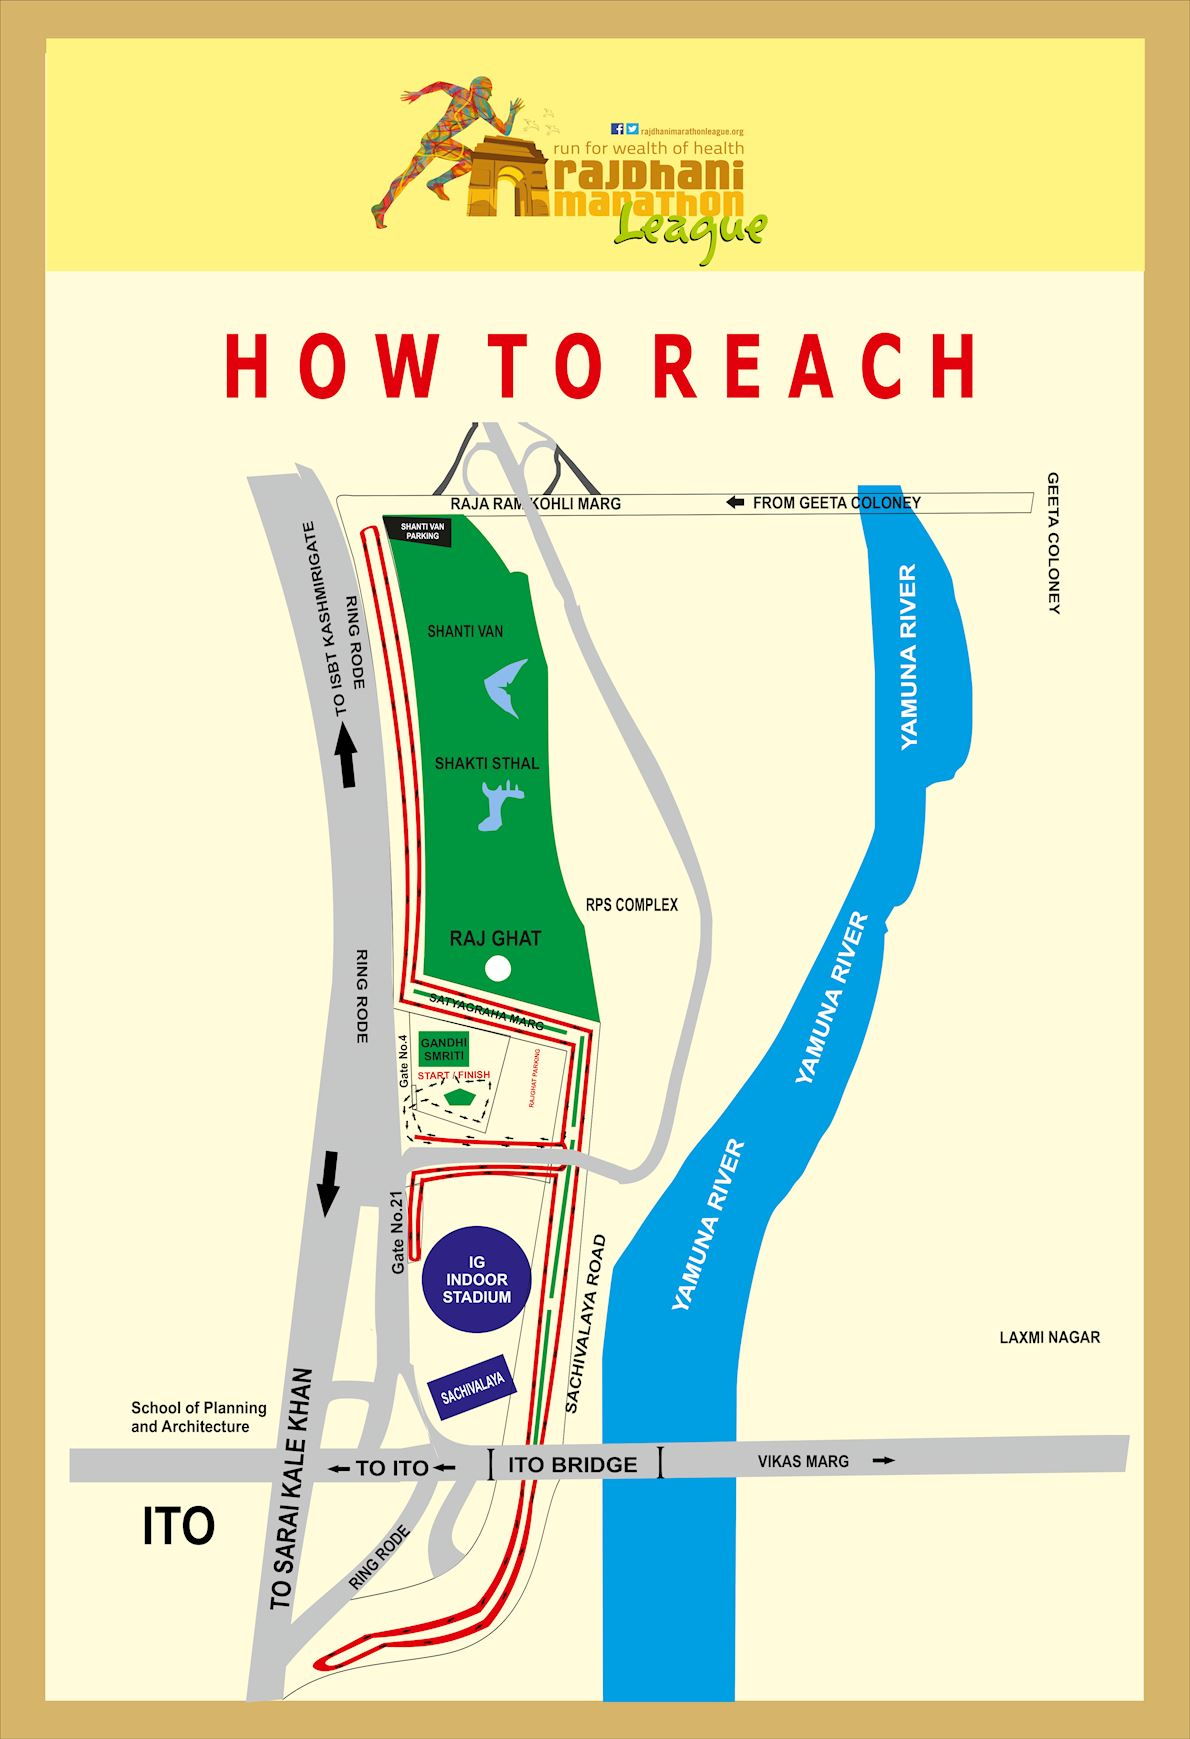 Rajdhani Marathon League Route Map